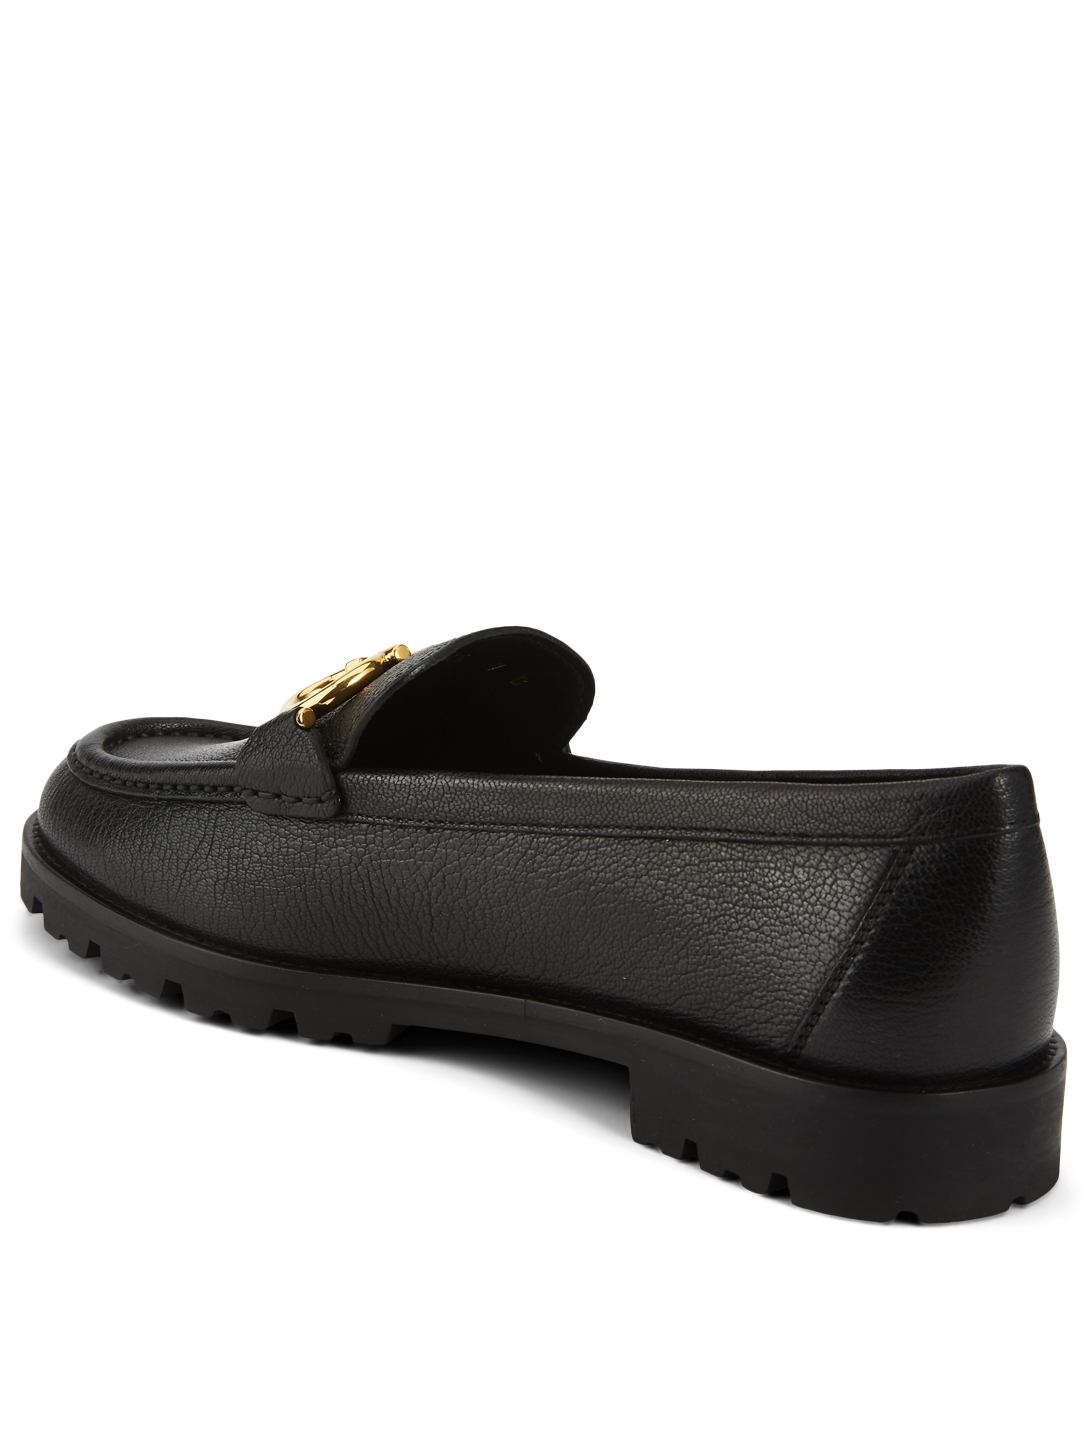 SALVATORE FERRAGAMO Rolo Leather Loafers Women's Black